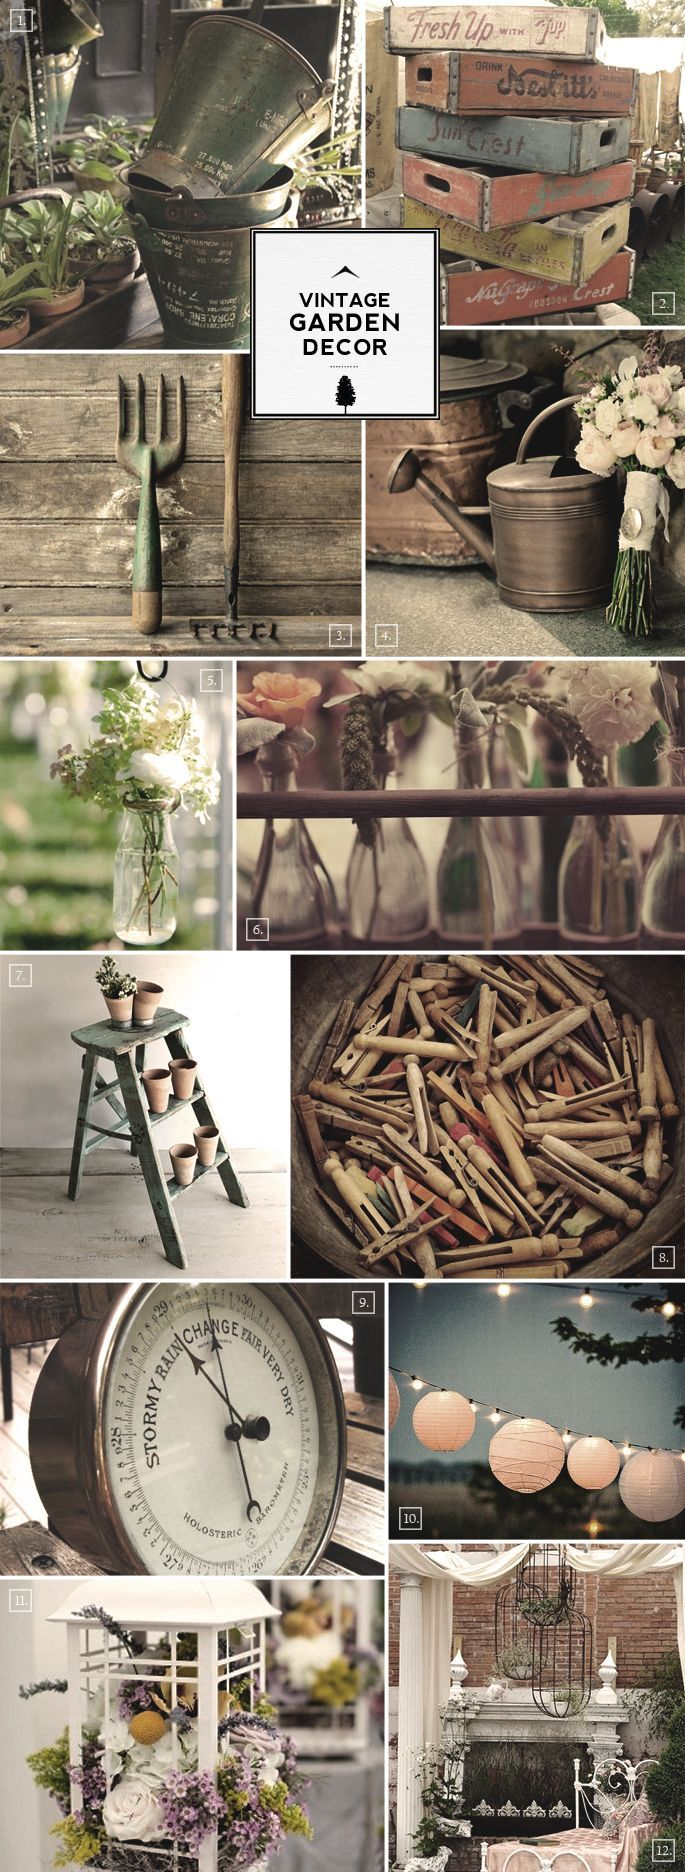 Ideas for Vintage Garden Decor and Outdoor Accessories. DONT want it to look country, shabby chic, want it to have more of an elegant, formal look